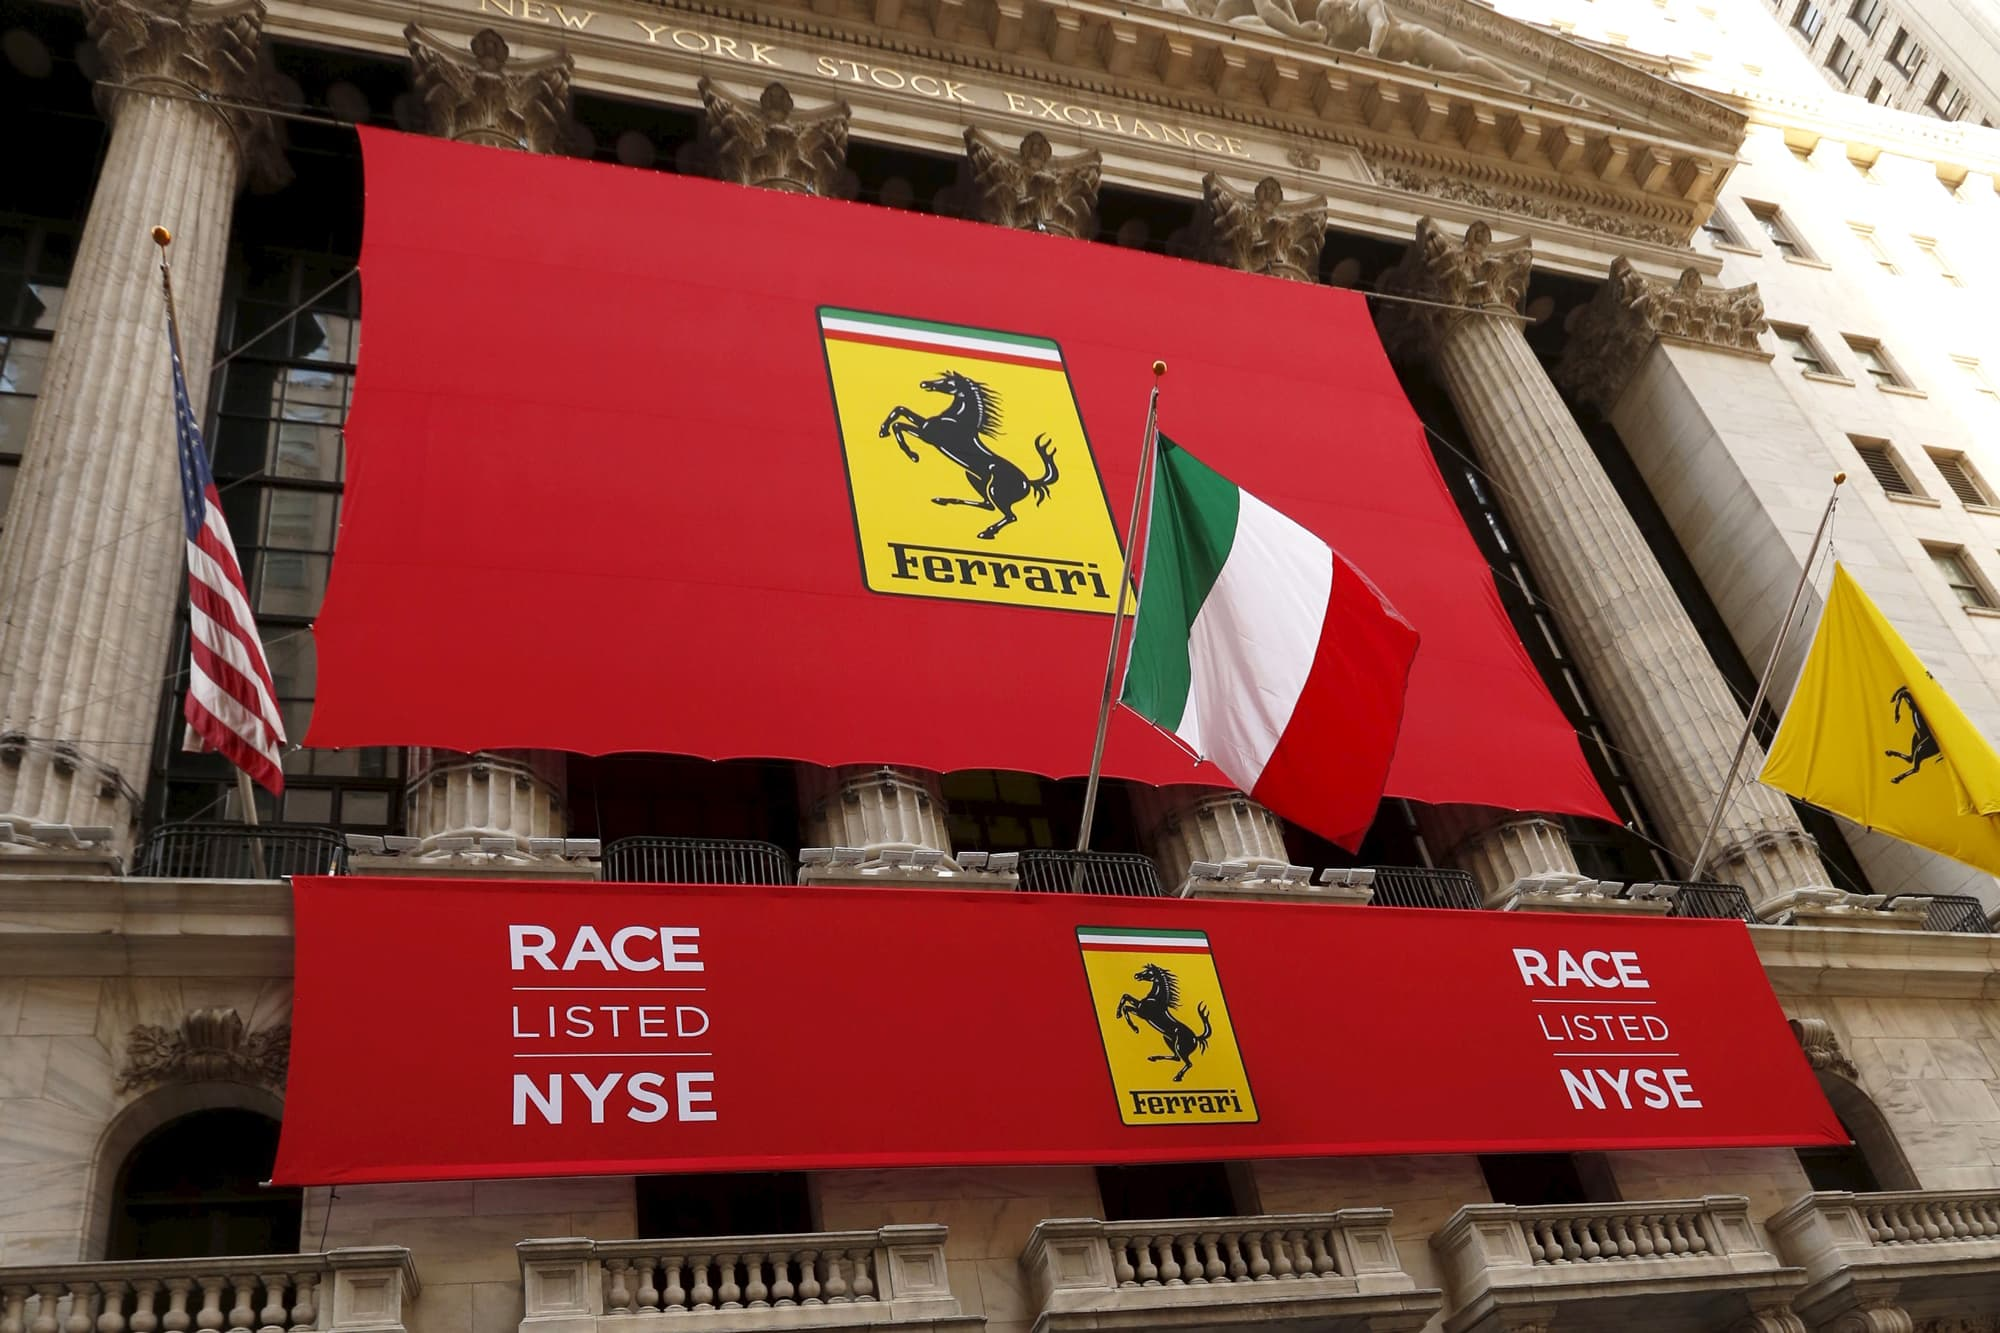 Buying Ferrari Stock Youll End Up With A Fiat